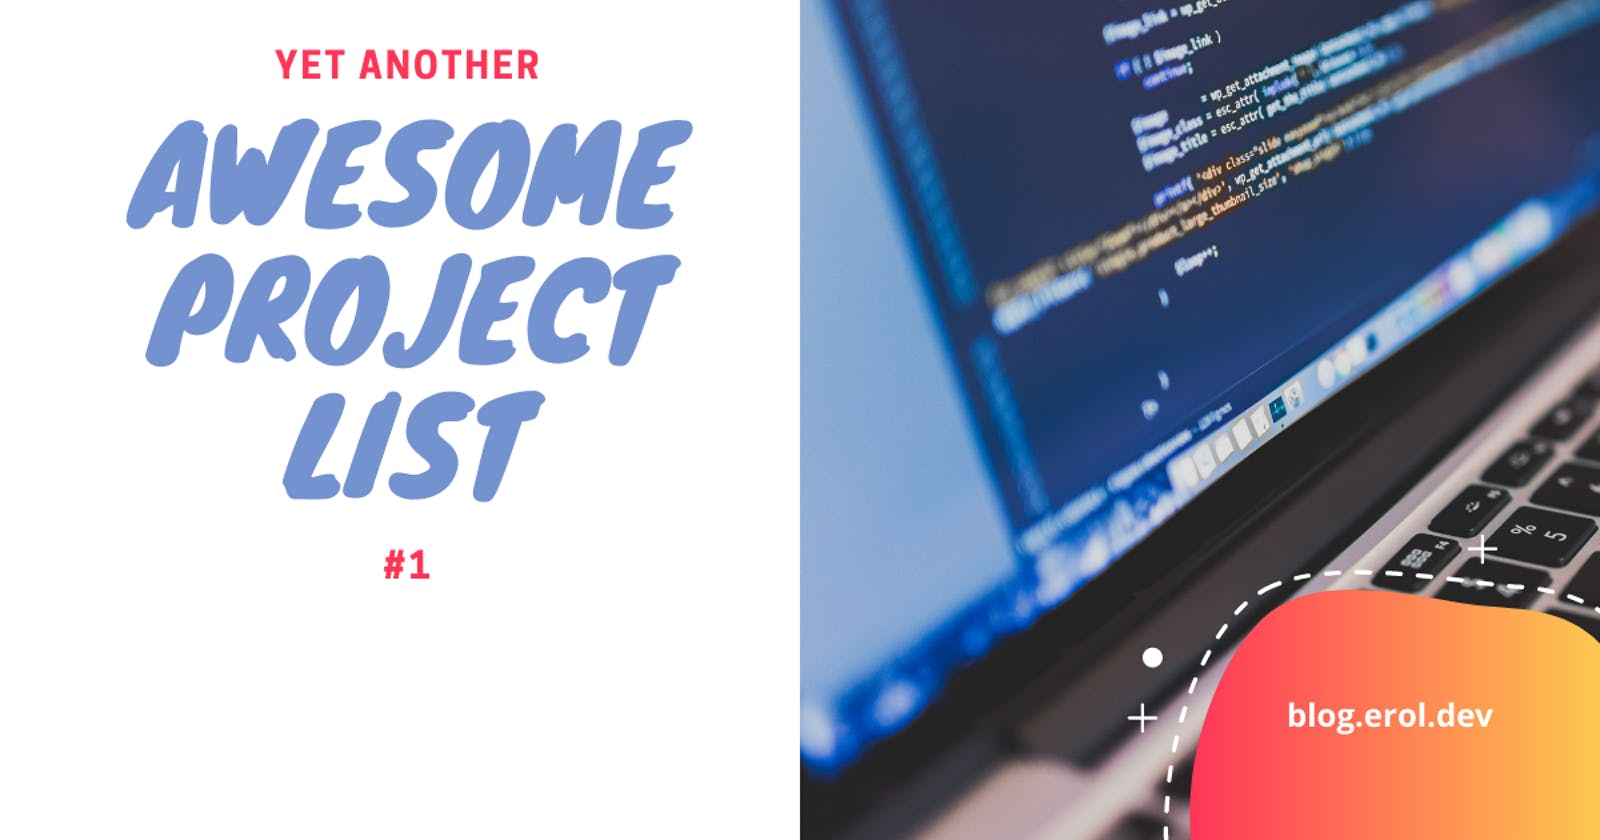 Yet Another Awesome Project List (#1)